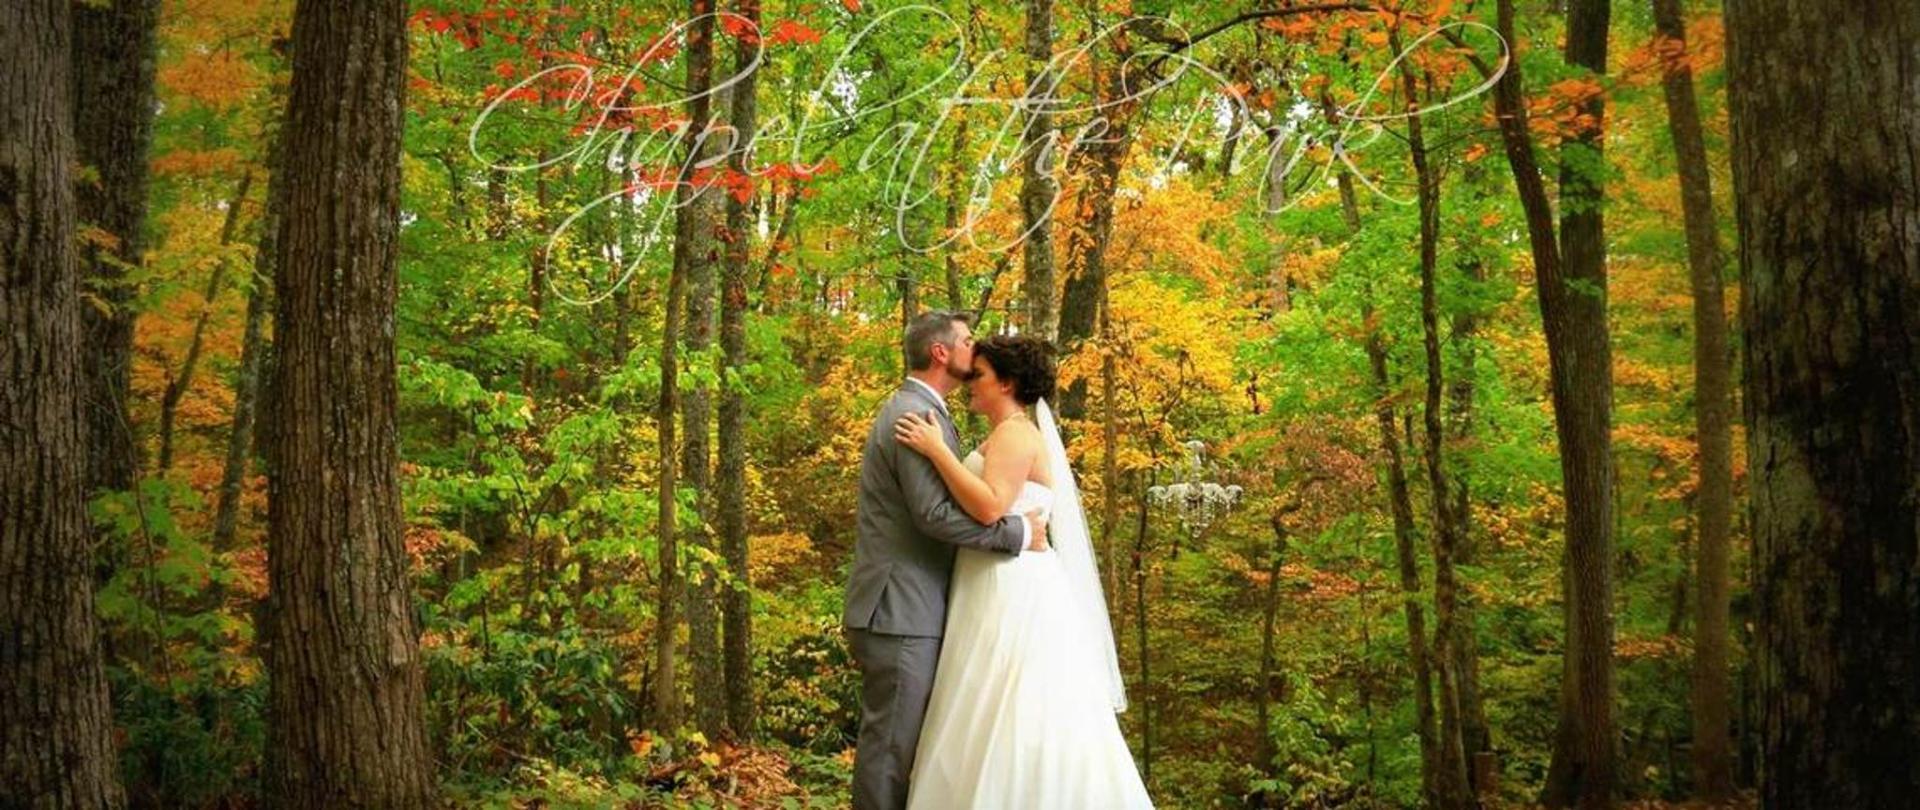 chapel-at-the-park-fall-forest-kiss.jpg.1140x481_default.jpg